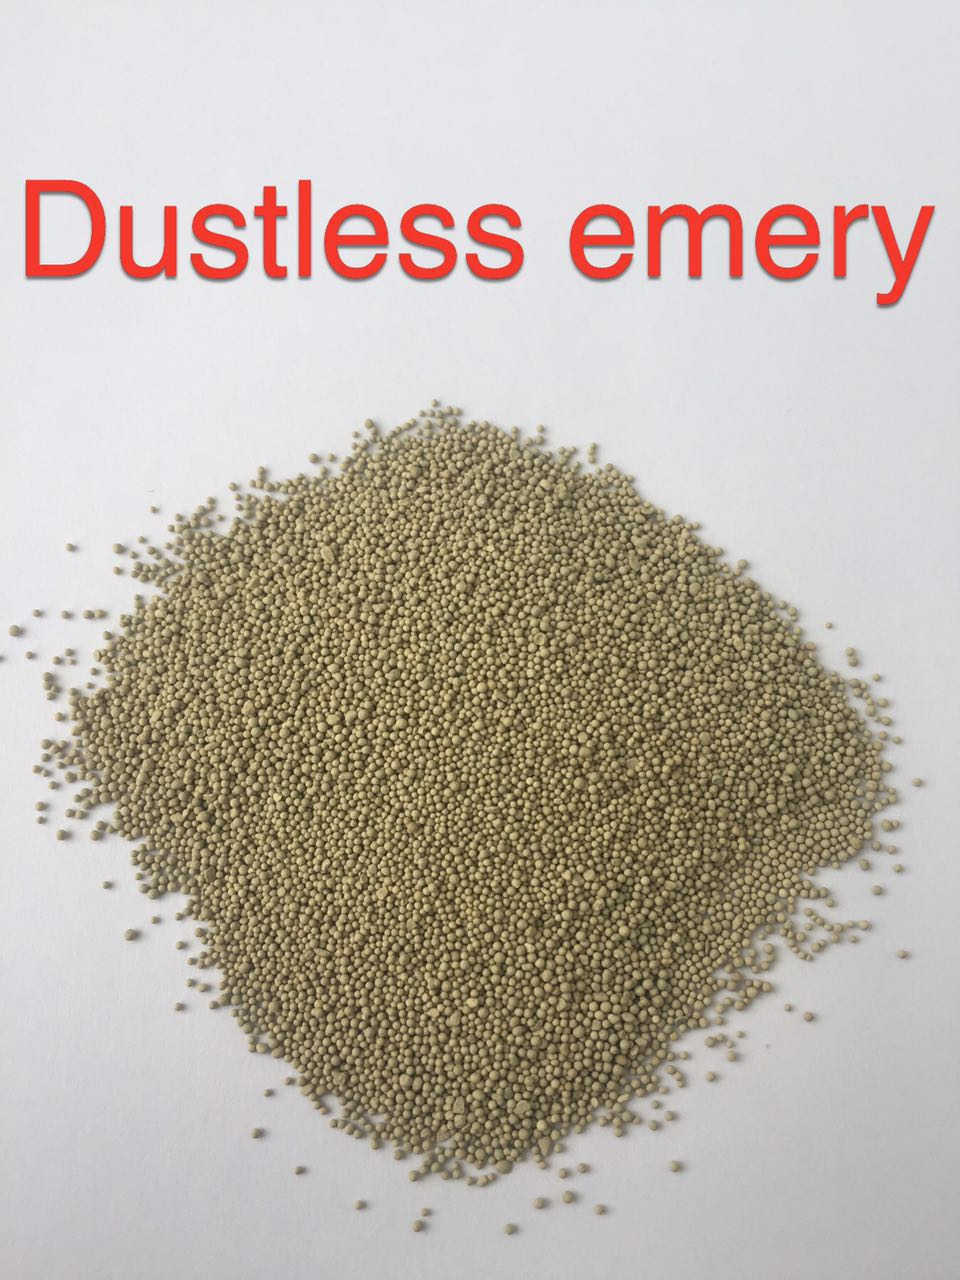 dustless emery